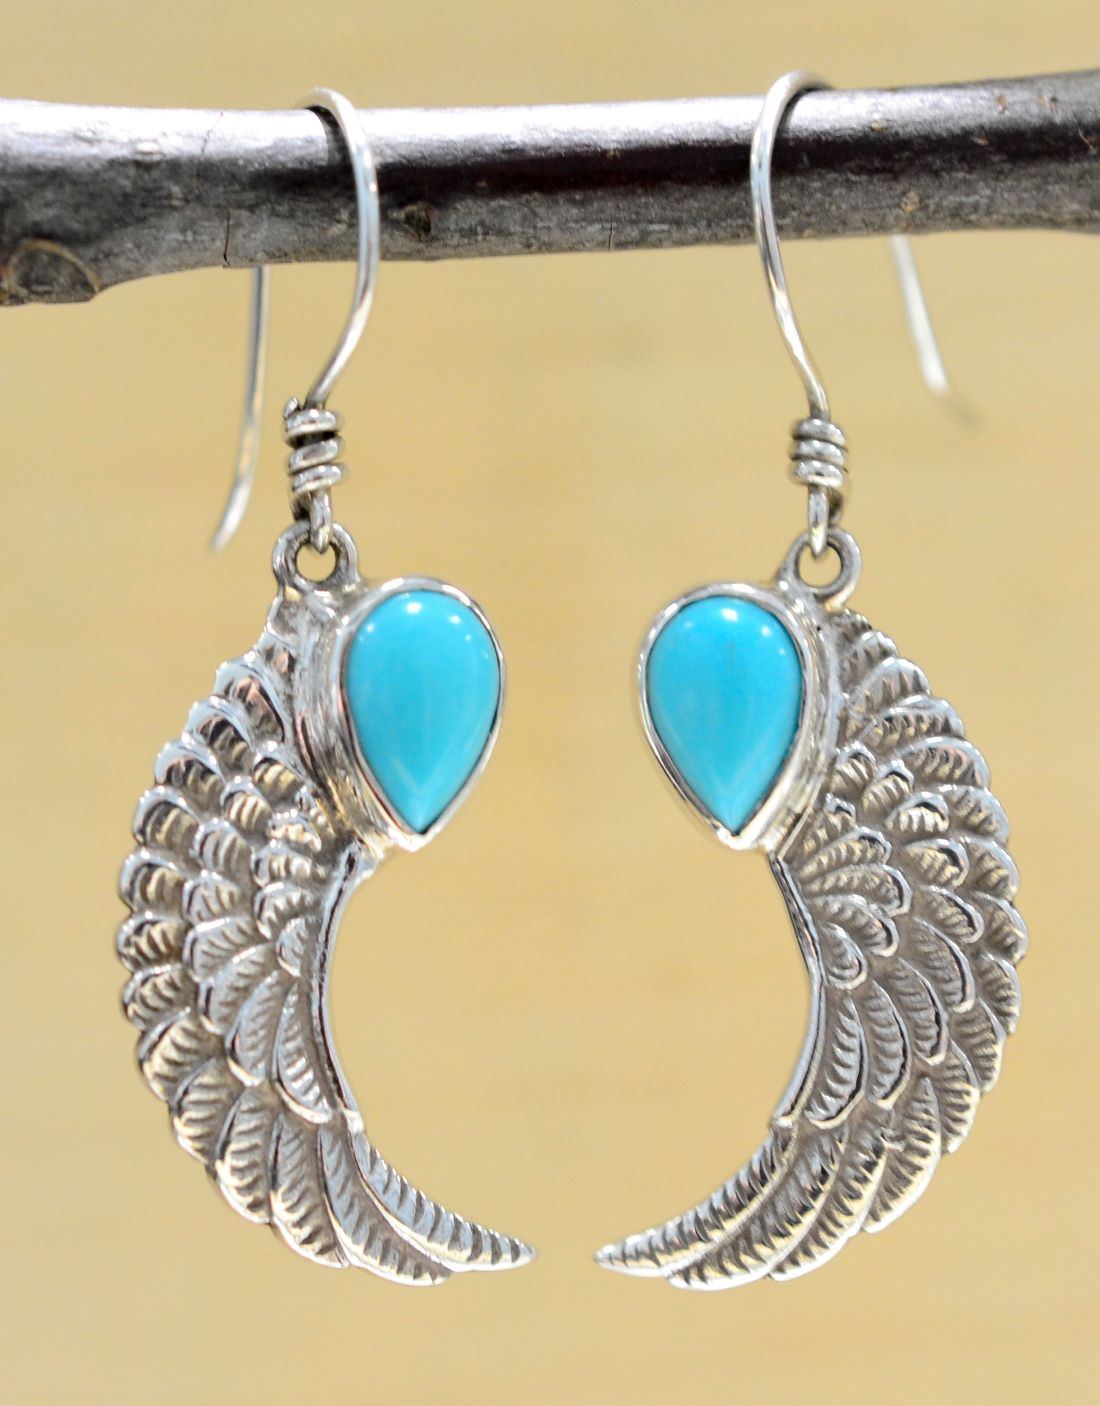 dbf9344d8 Bright blue turquoise and detailed .925 sterling silver wing dangle ...